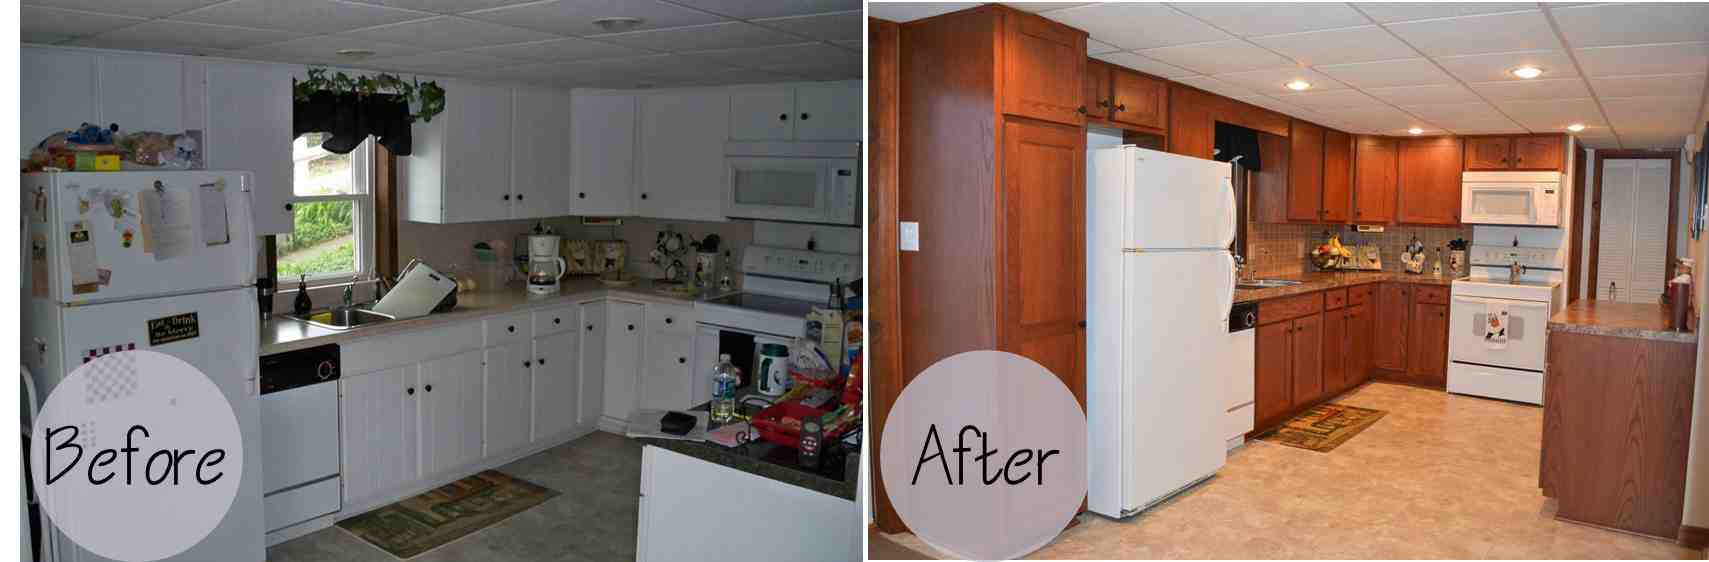 refacing kitchen cabinets before and after kitchen cabinet refacing before and after photos decor 25246